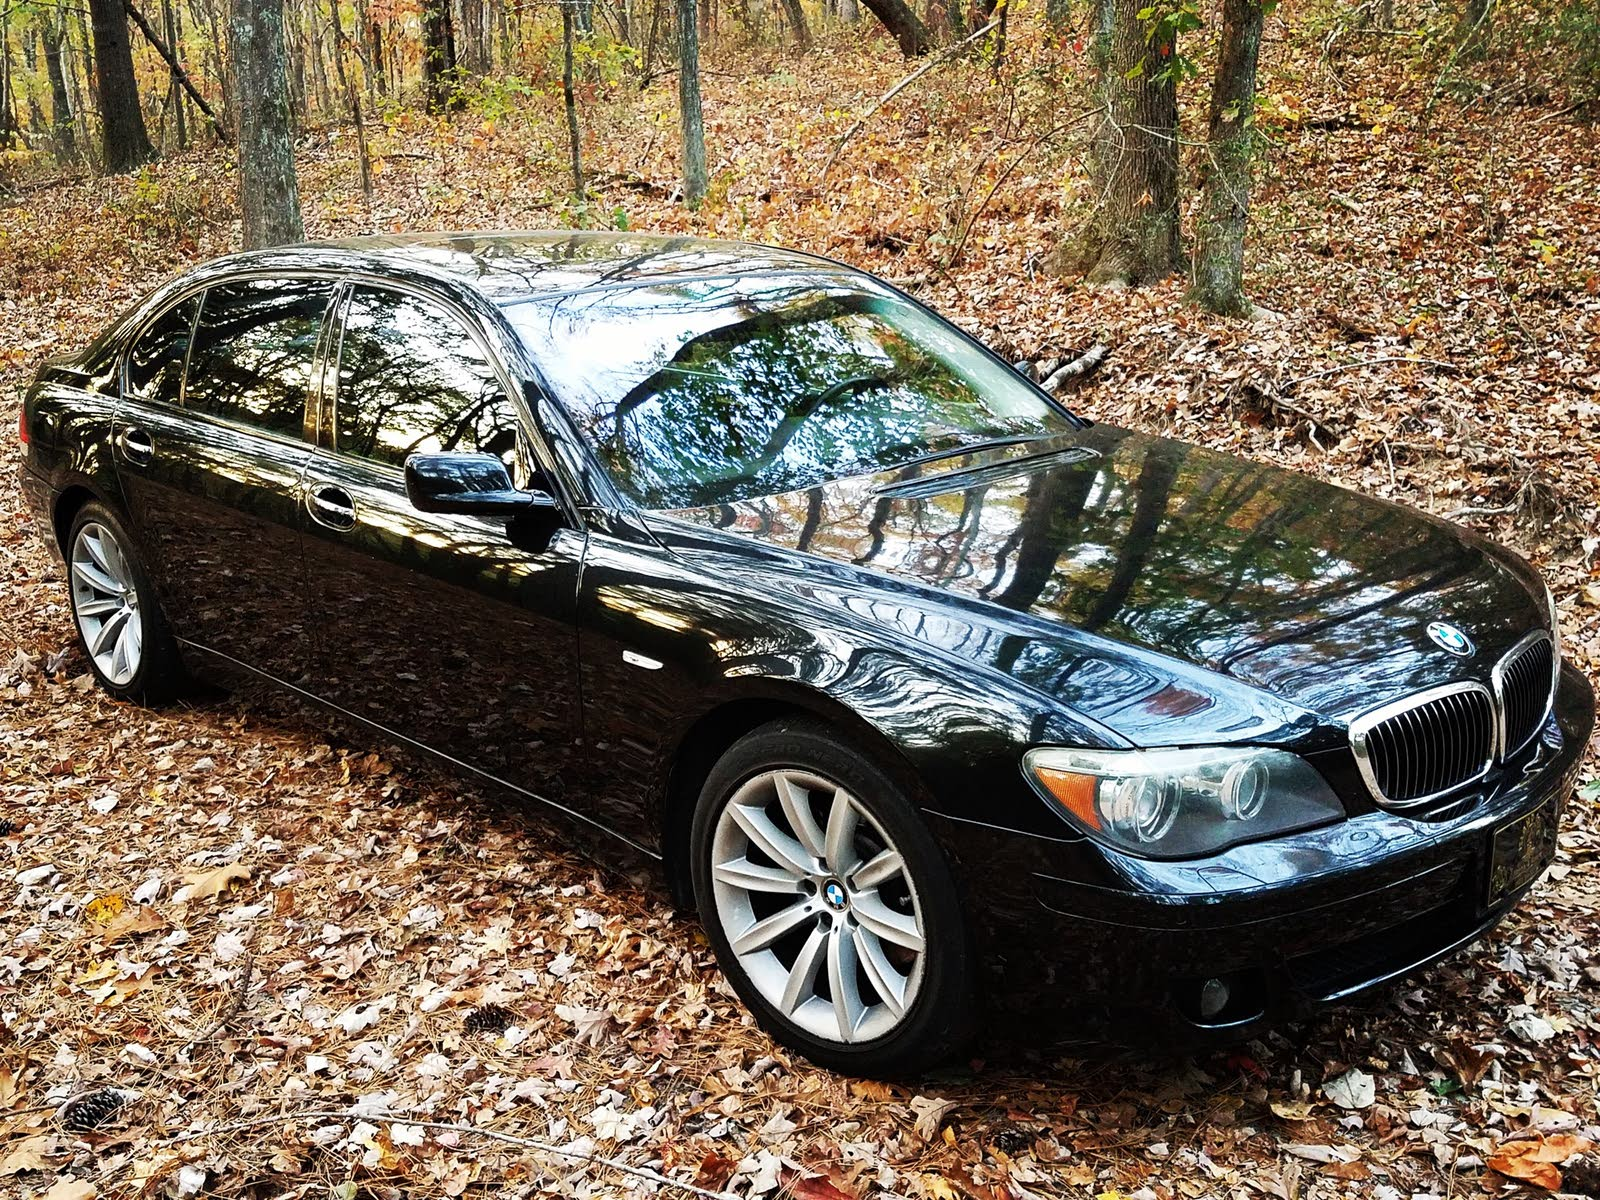 BMW 7 Series Questions - 750 LI can a dead battery cause